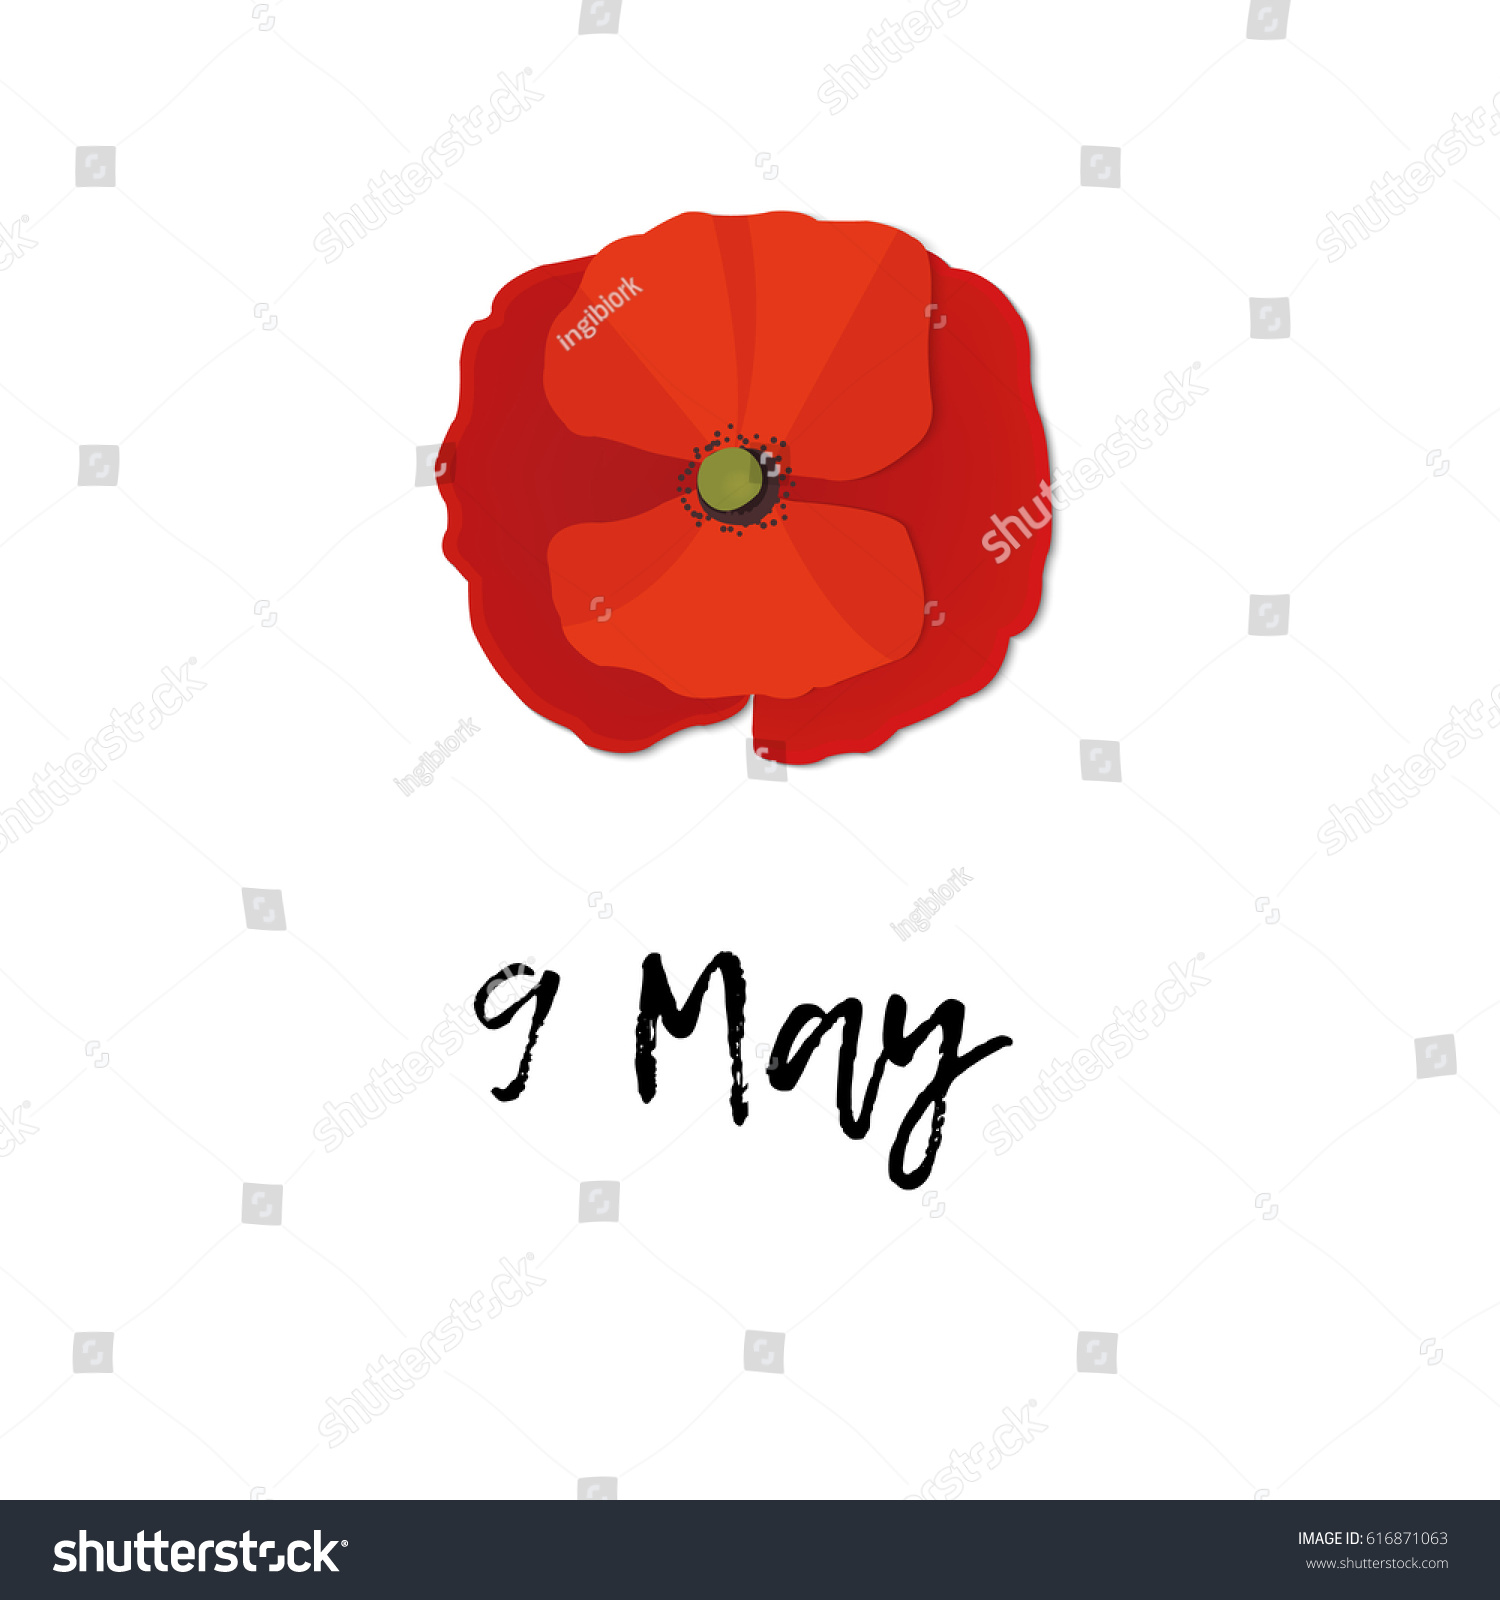 Red poppy flat vector banner 9 stock vector 616871063 shutterstock red poppy flat vector banner 9 may stylized flower symbol stock vector buycottarizona